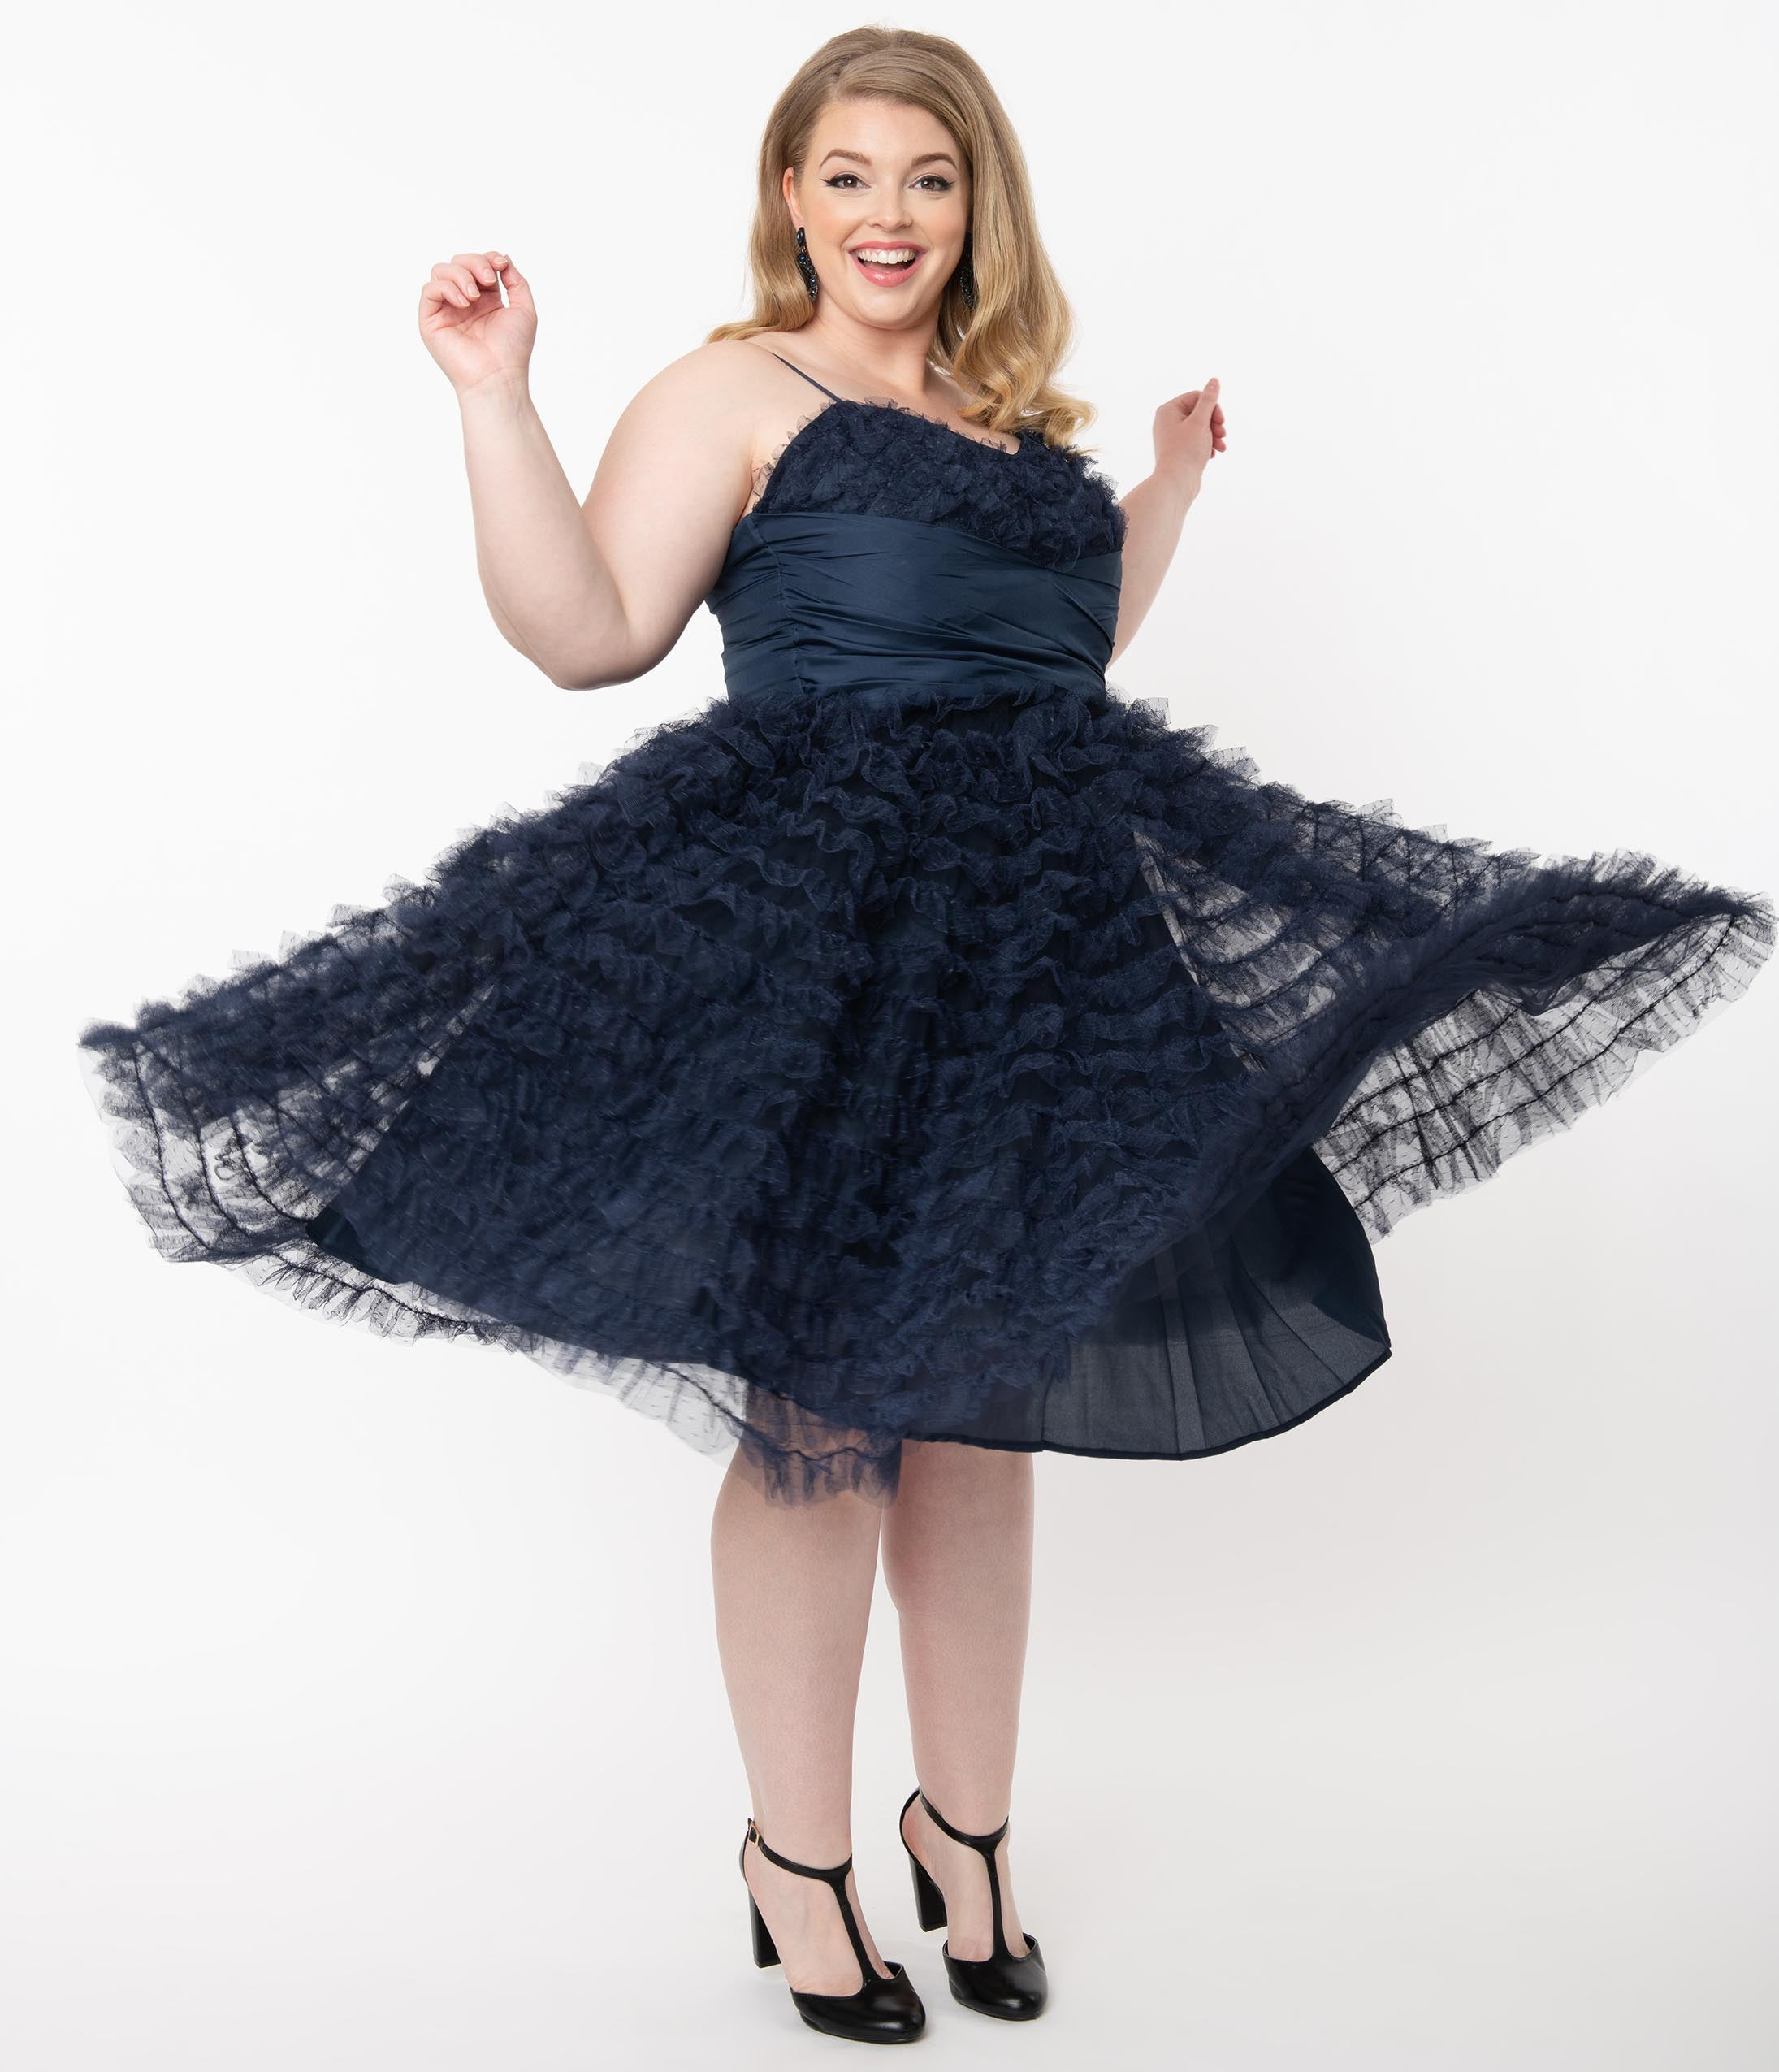 Old Hollywood Glamour Dresses Unique Vintage Plus Size 1950S Navy Ruffled Tulle Cupcake Swing Dress $118.00 AT vintagedancer.com